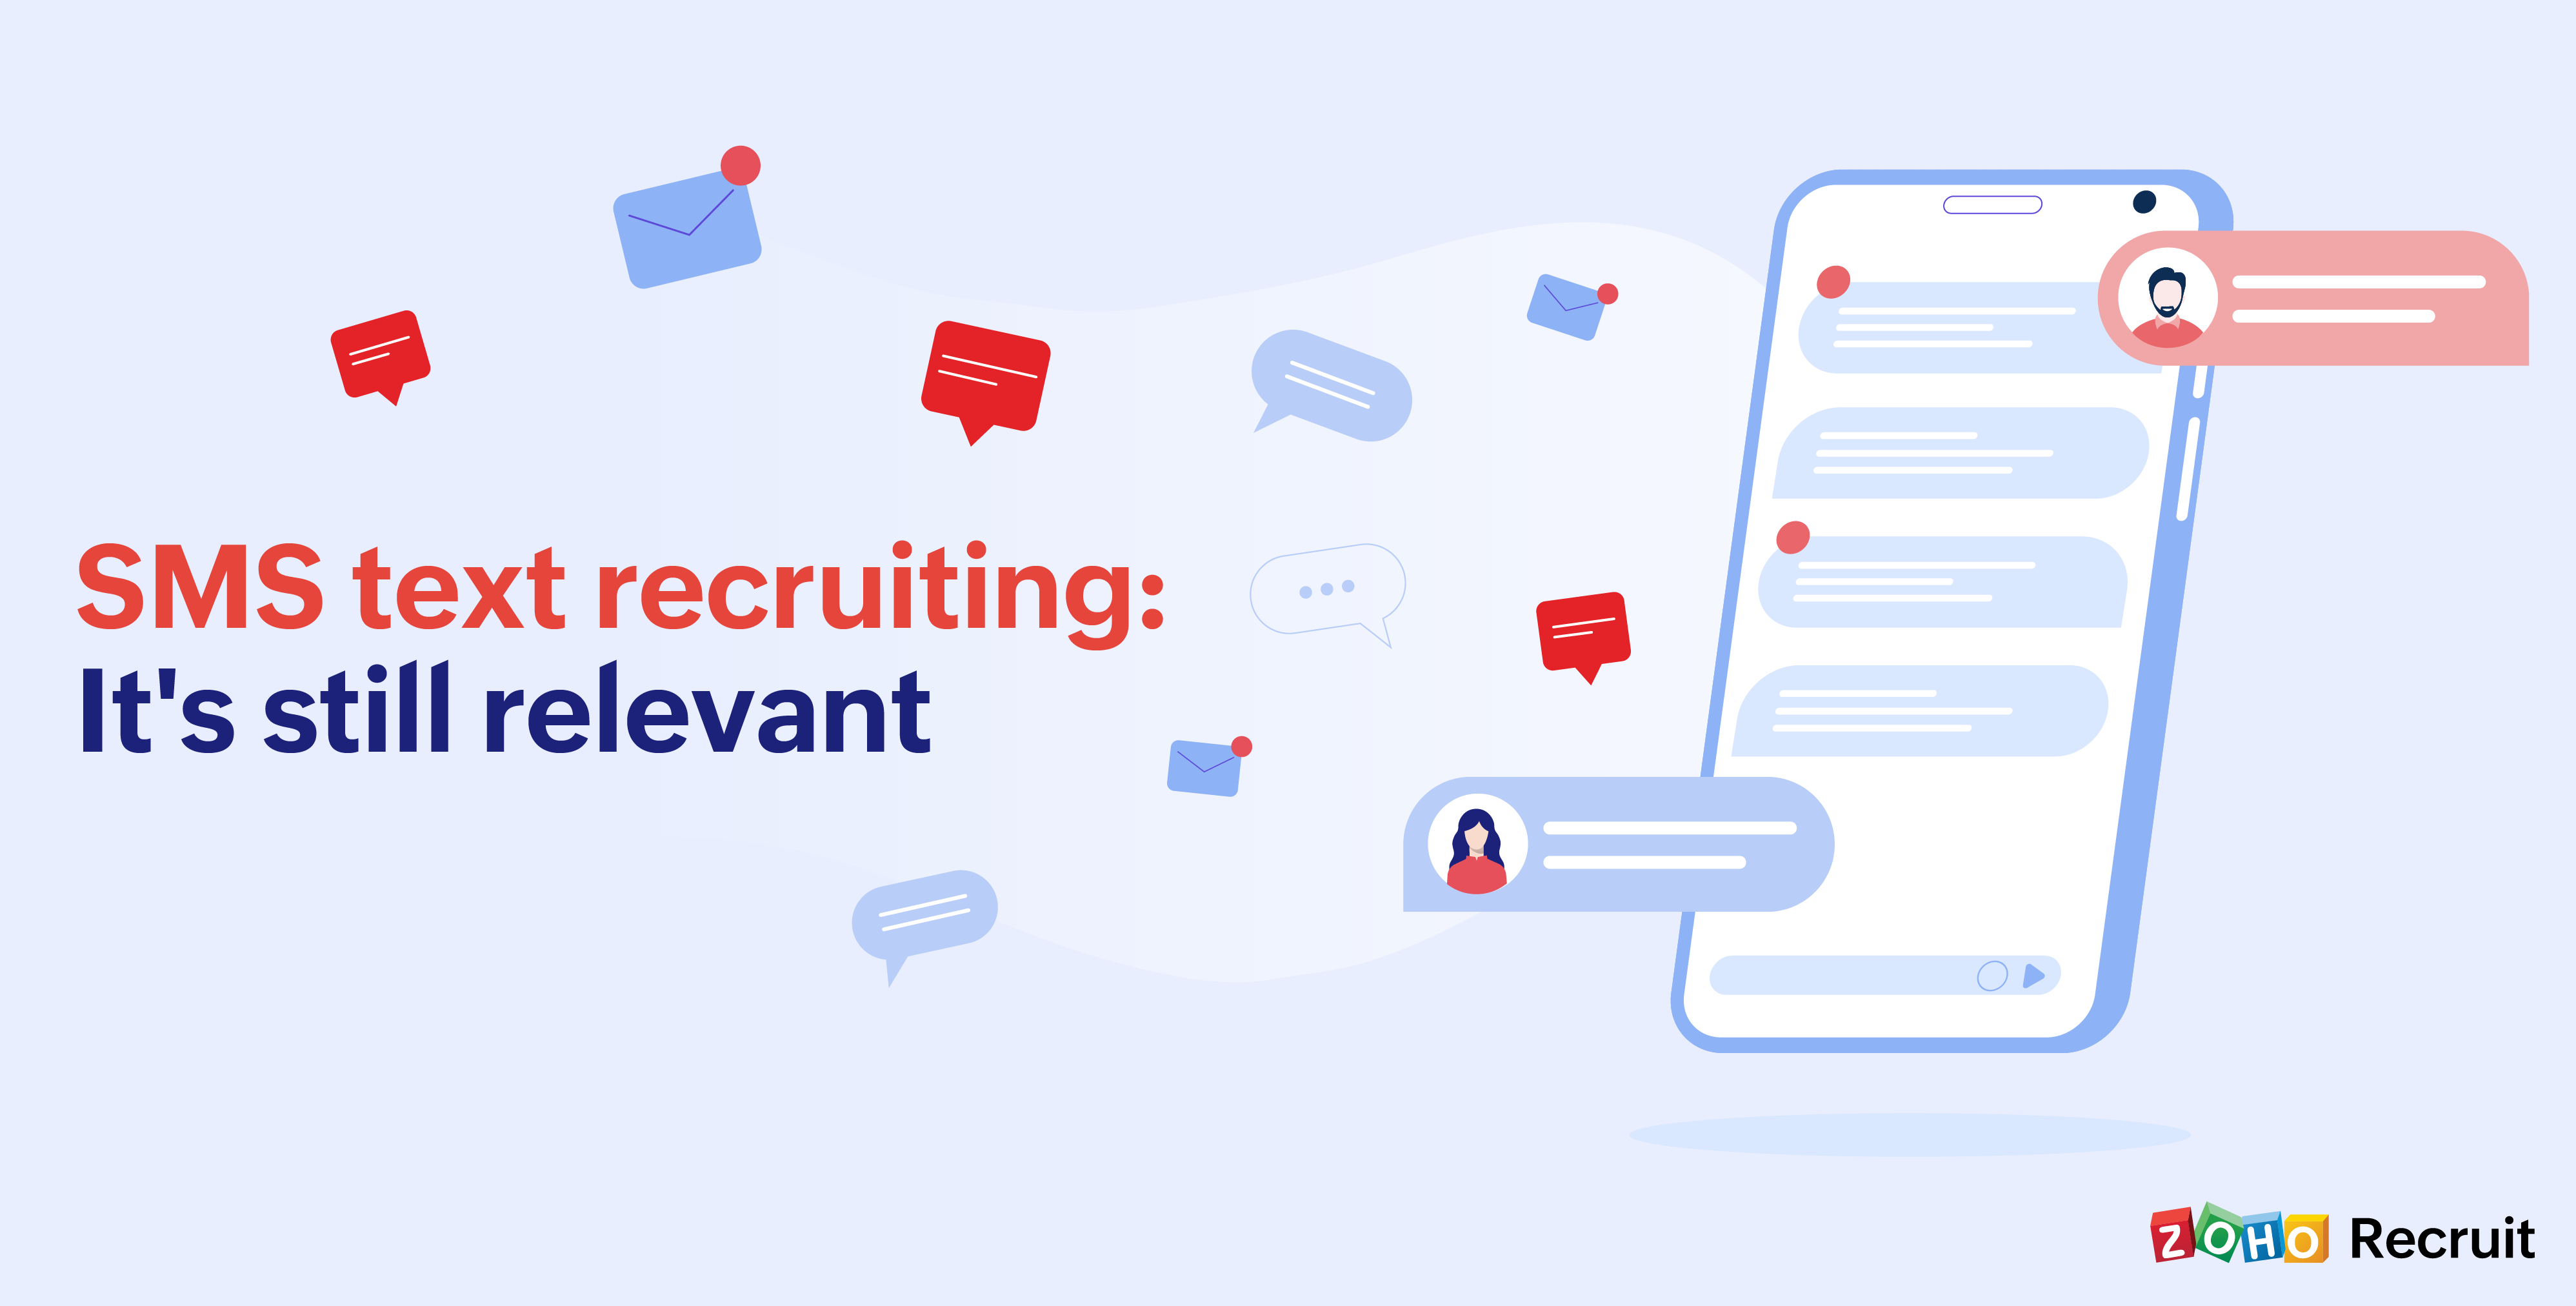 Why SMS texting should be an important part of your recruiting process